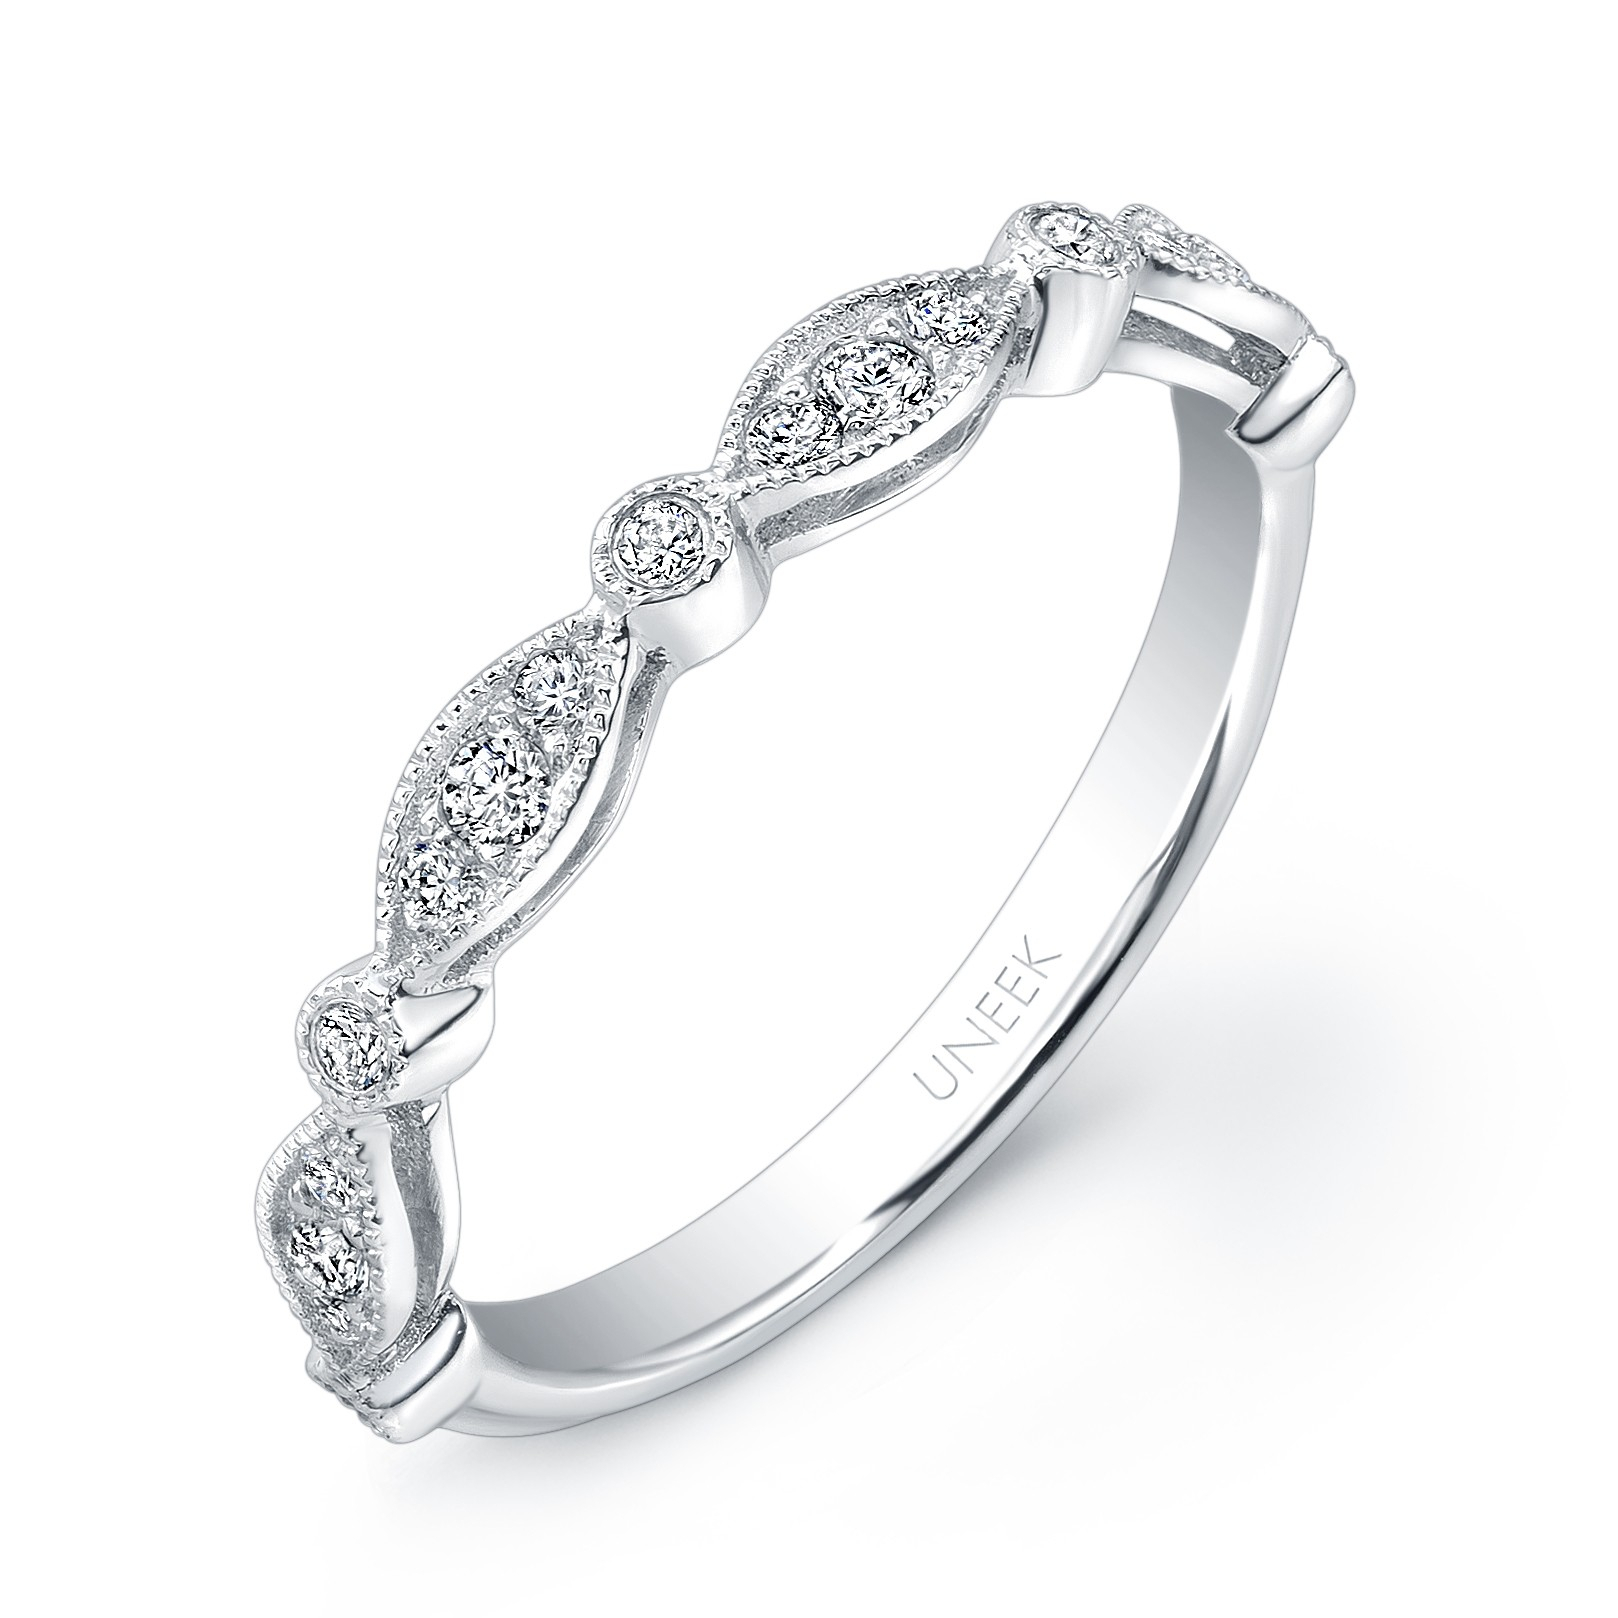 Uneek Art Nouveau Inspired Diamond Wedding Band In In Most Popular Diamond Art Deco Inspired Anniversary Bands In White Gold (View 23 of 25)